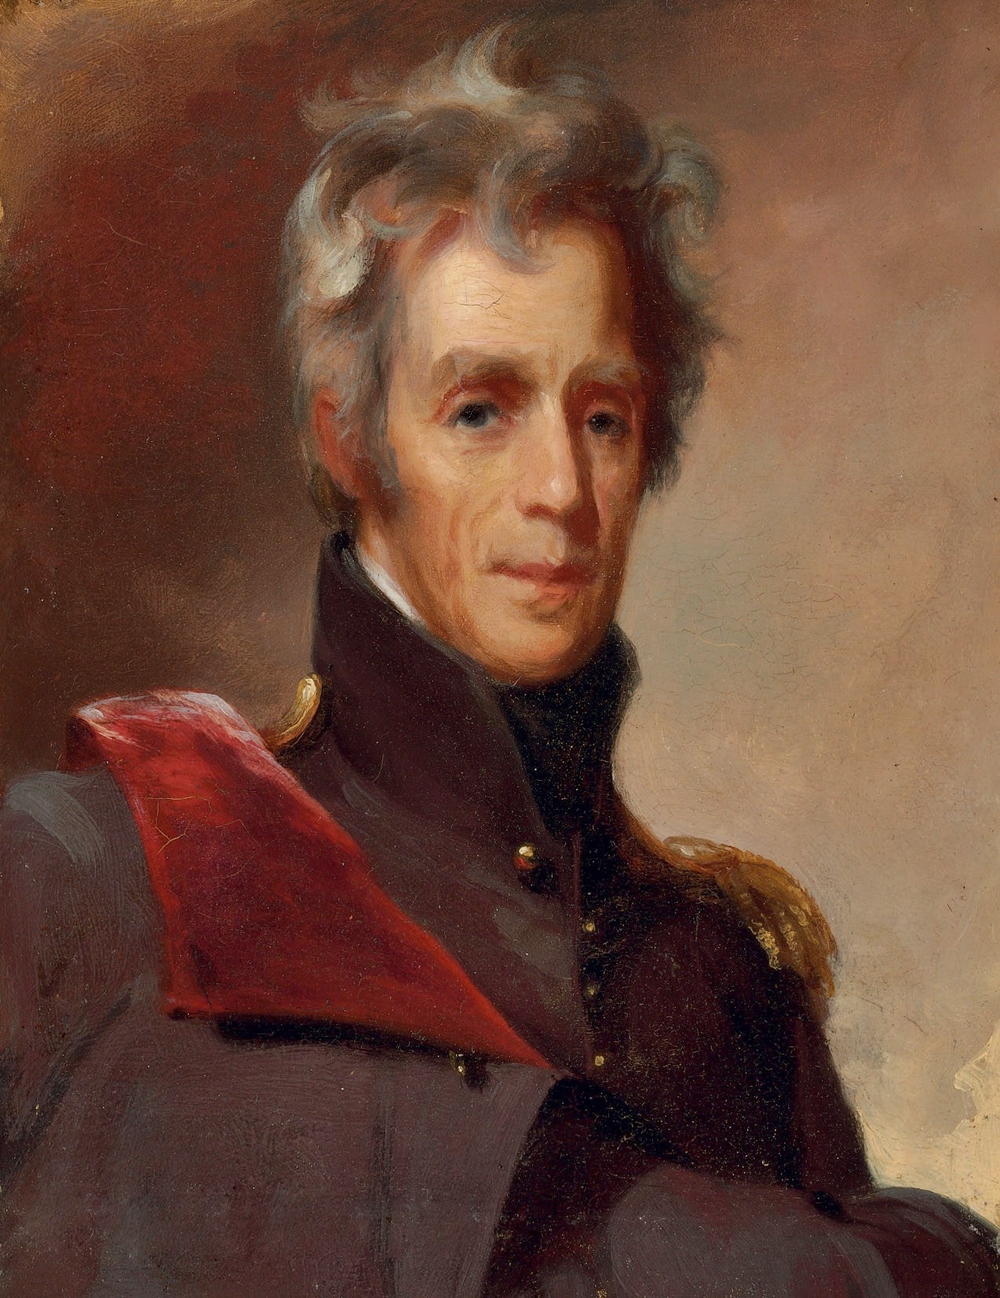 Andrew Jackson's men said that he was as tough as 'old hickory'.  The nickname would stick with him throughout life.